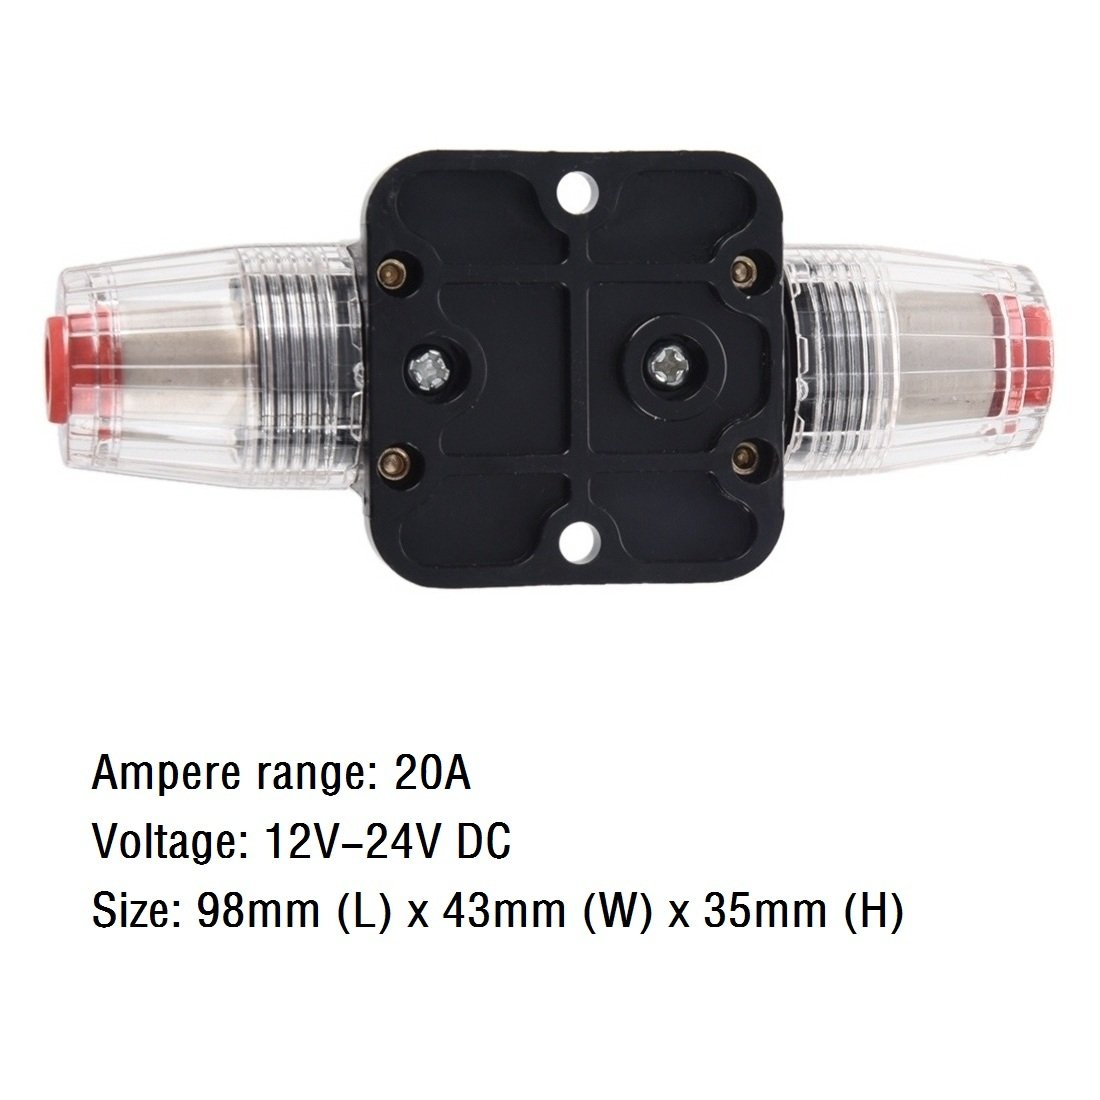 ANJOSHI Fuse Holders 50amp 20-300A Inline Circuit Breaker for Car Audio and Amps Overload Protection Reset Fuse Inverter 12V-24V DC Replace Fuses